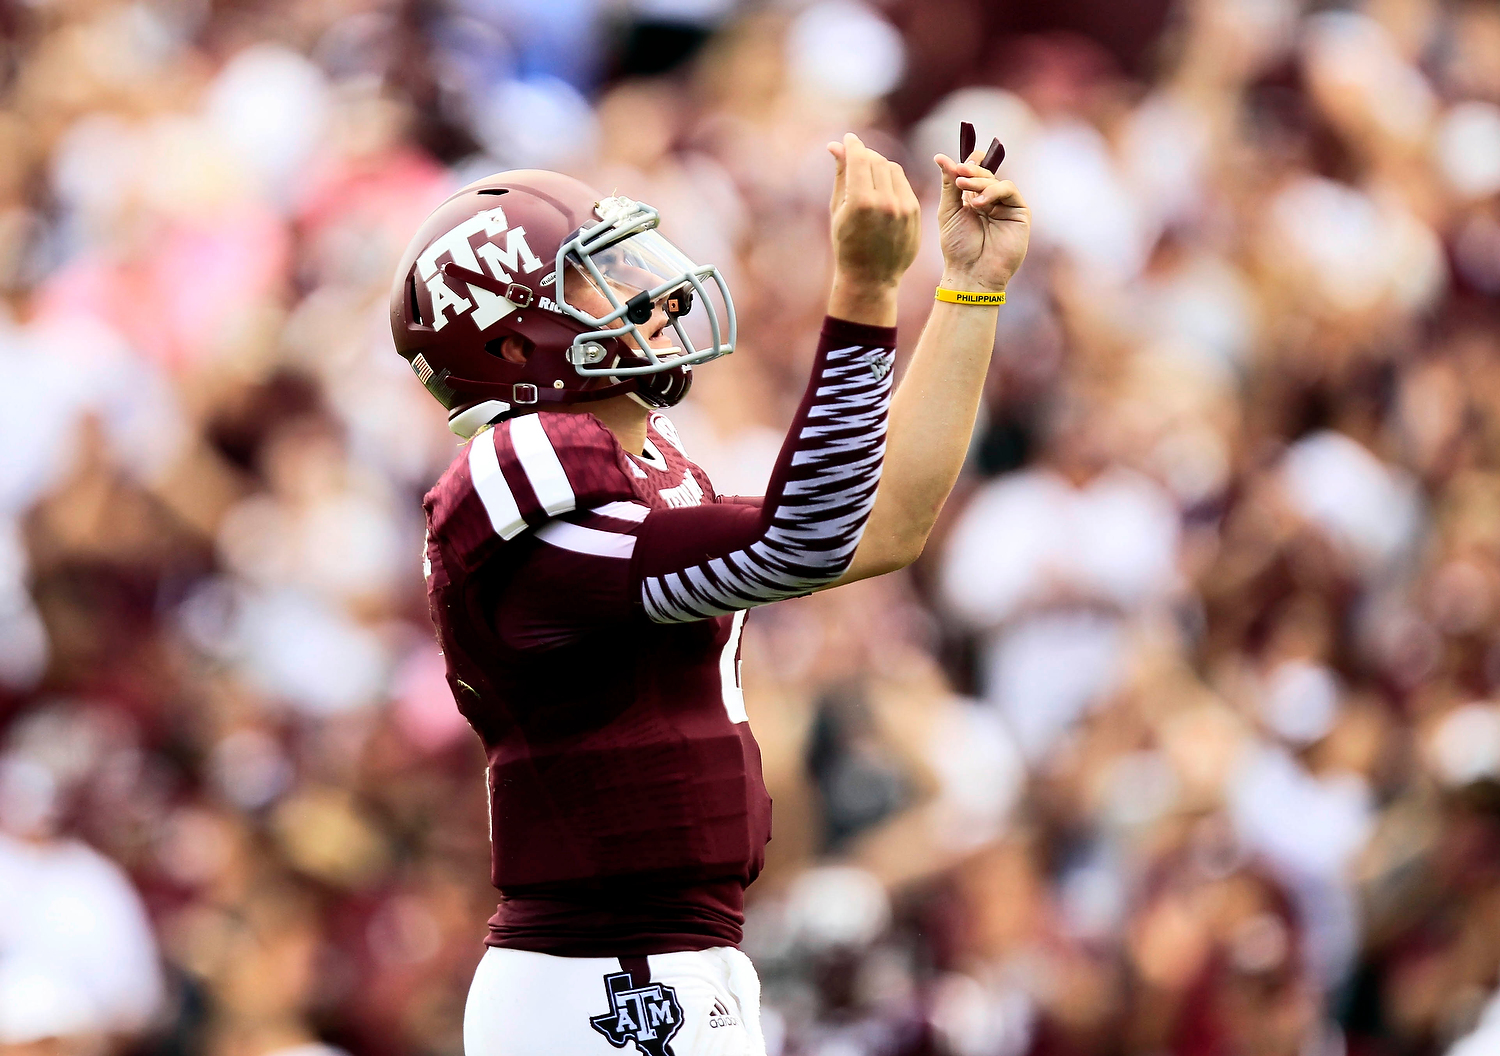 Texas A&M quarterback Johnny Manziel (2) celebrates throwing his first touchdown of the season against during the third quarter at Kyle Field. (Thomas Campbell-USA TODAY Sports)